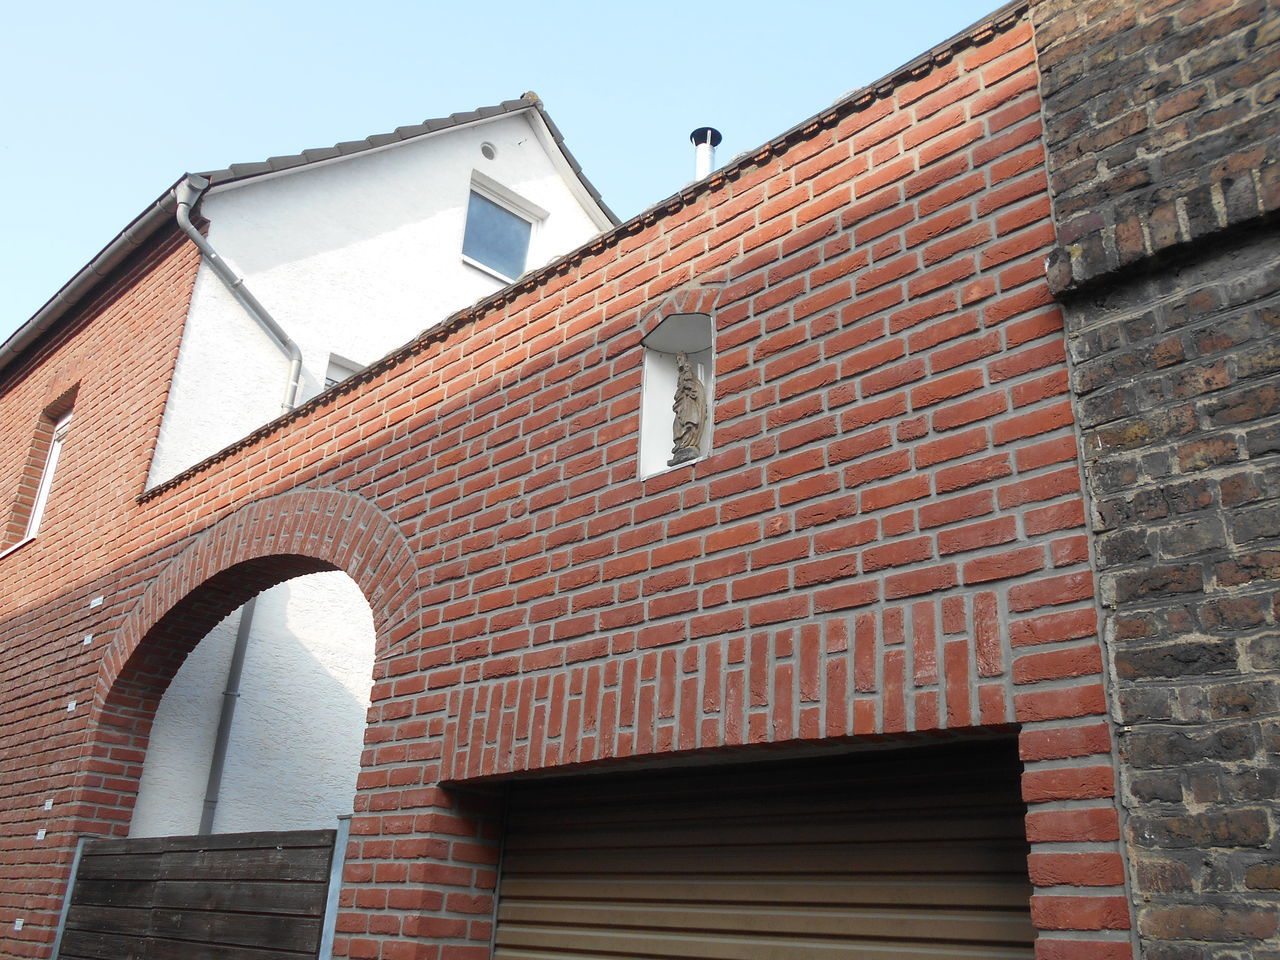 architecture, building exterior, built structure, brick wall, no people, window, low angle view, day, outdoors, sky